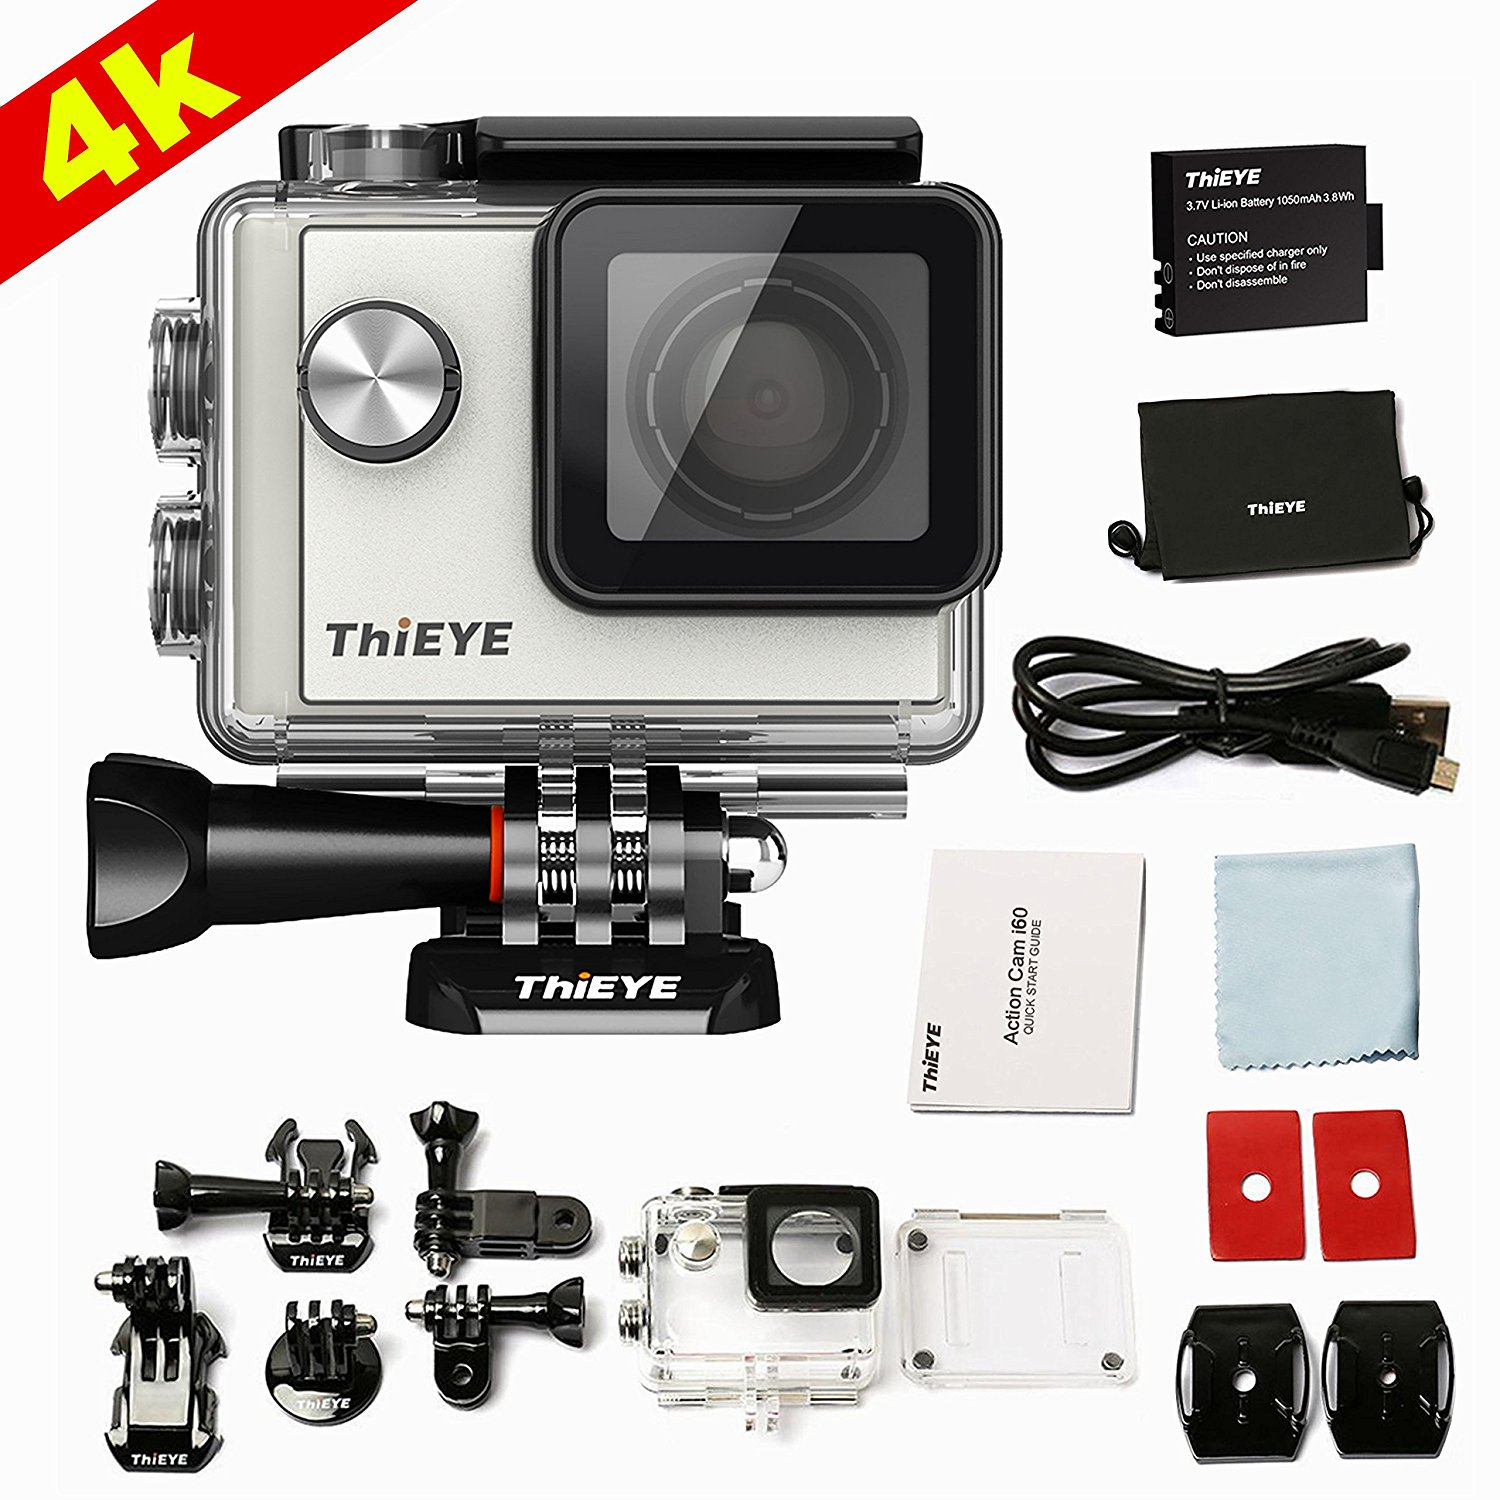 ThiEYE i60 4K WIFI Action Camera Full HD 1080P Waterproof Diving 131FT Sports Camera Helmet Cam Outdoor Sports DV, Accessories Included